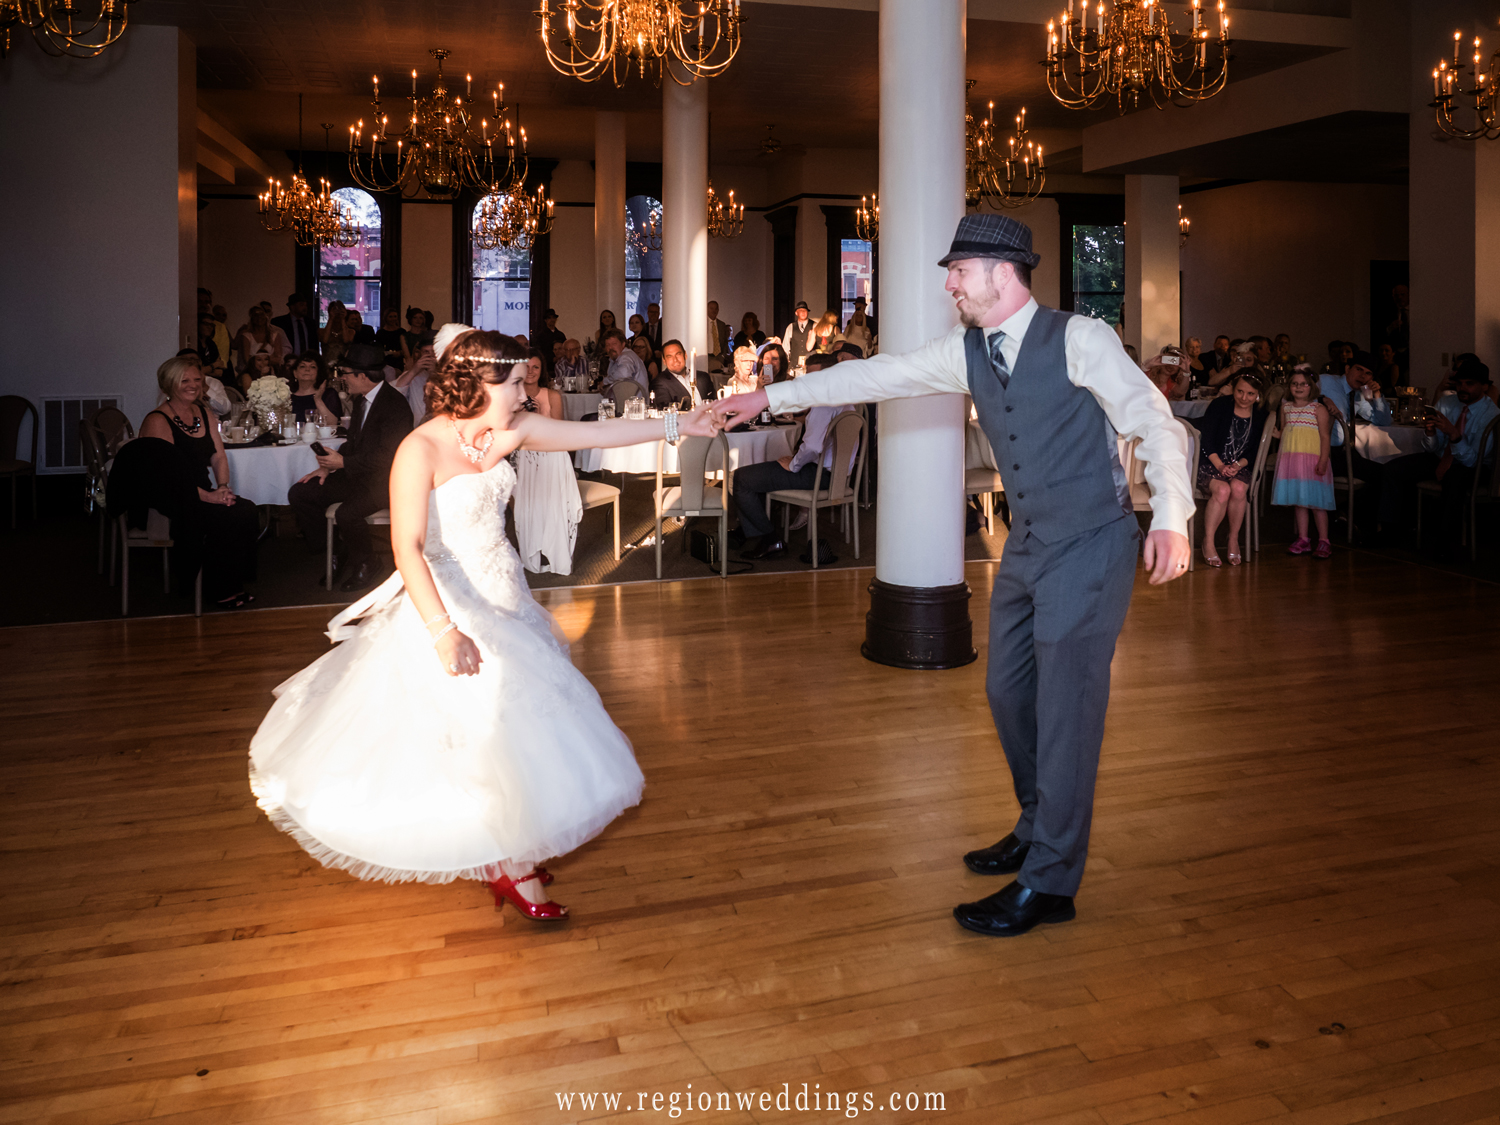 First dance at a 1920's themed wedding.